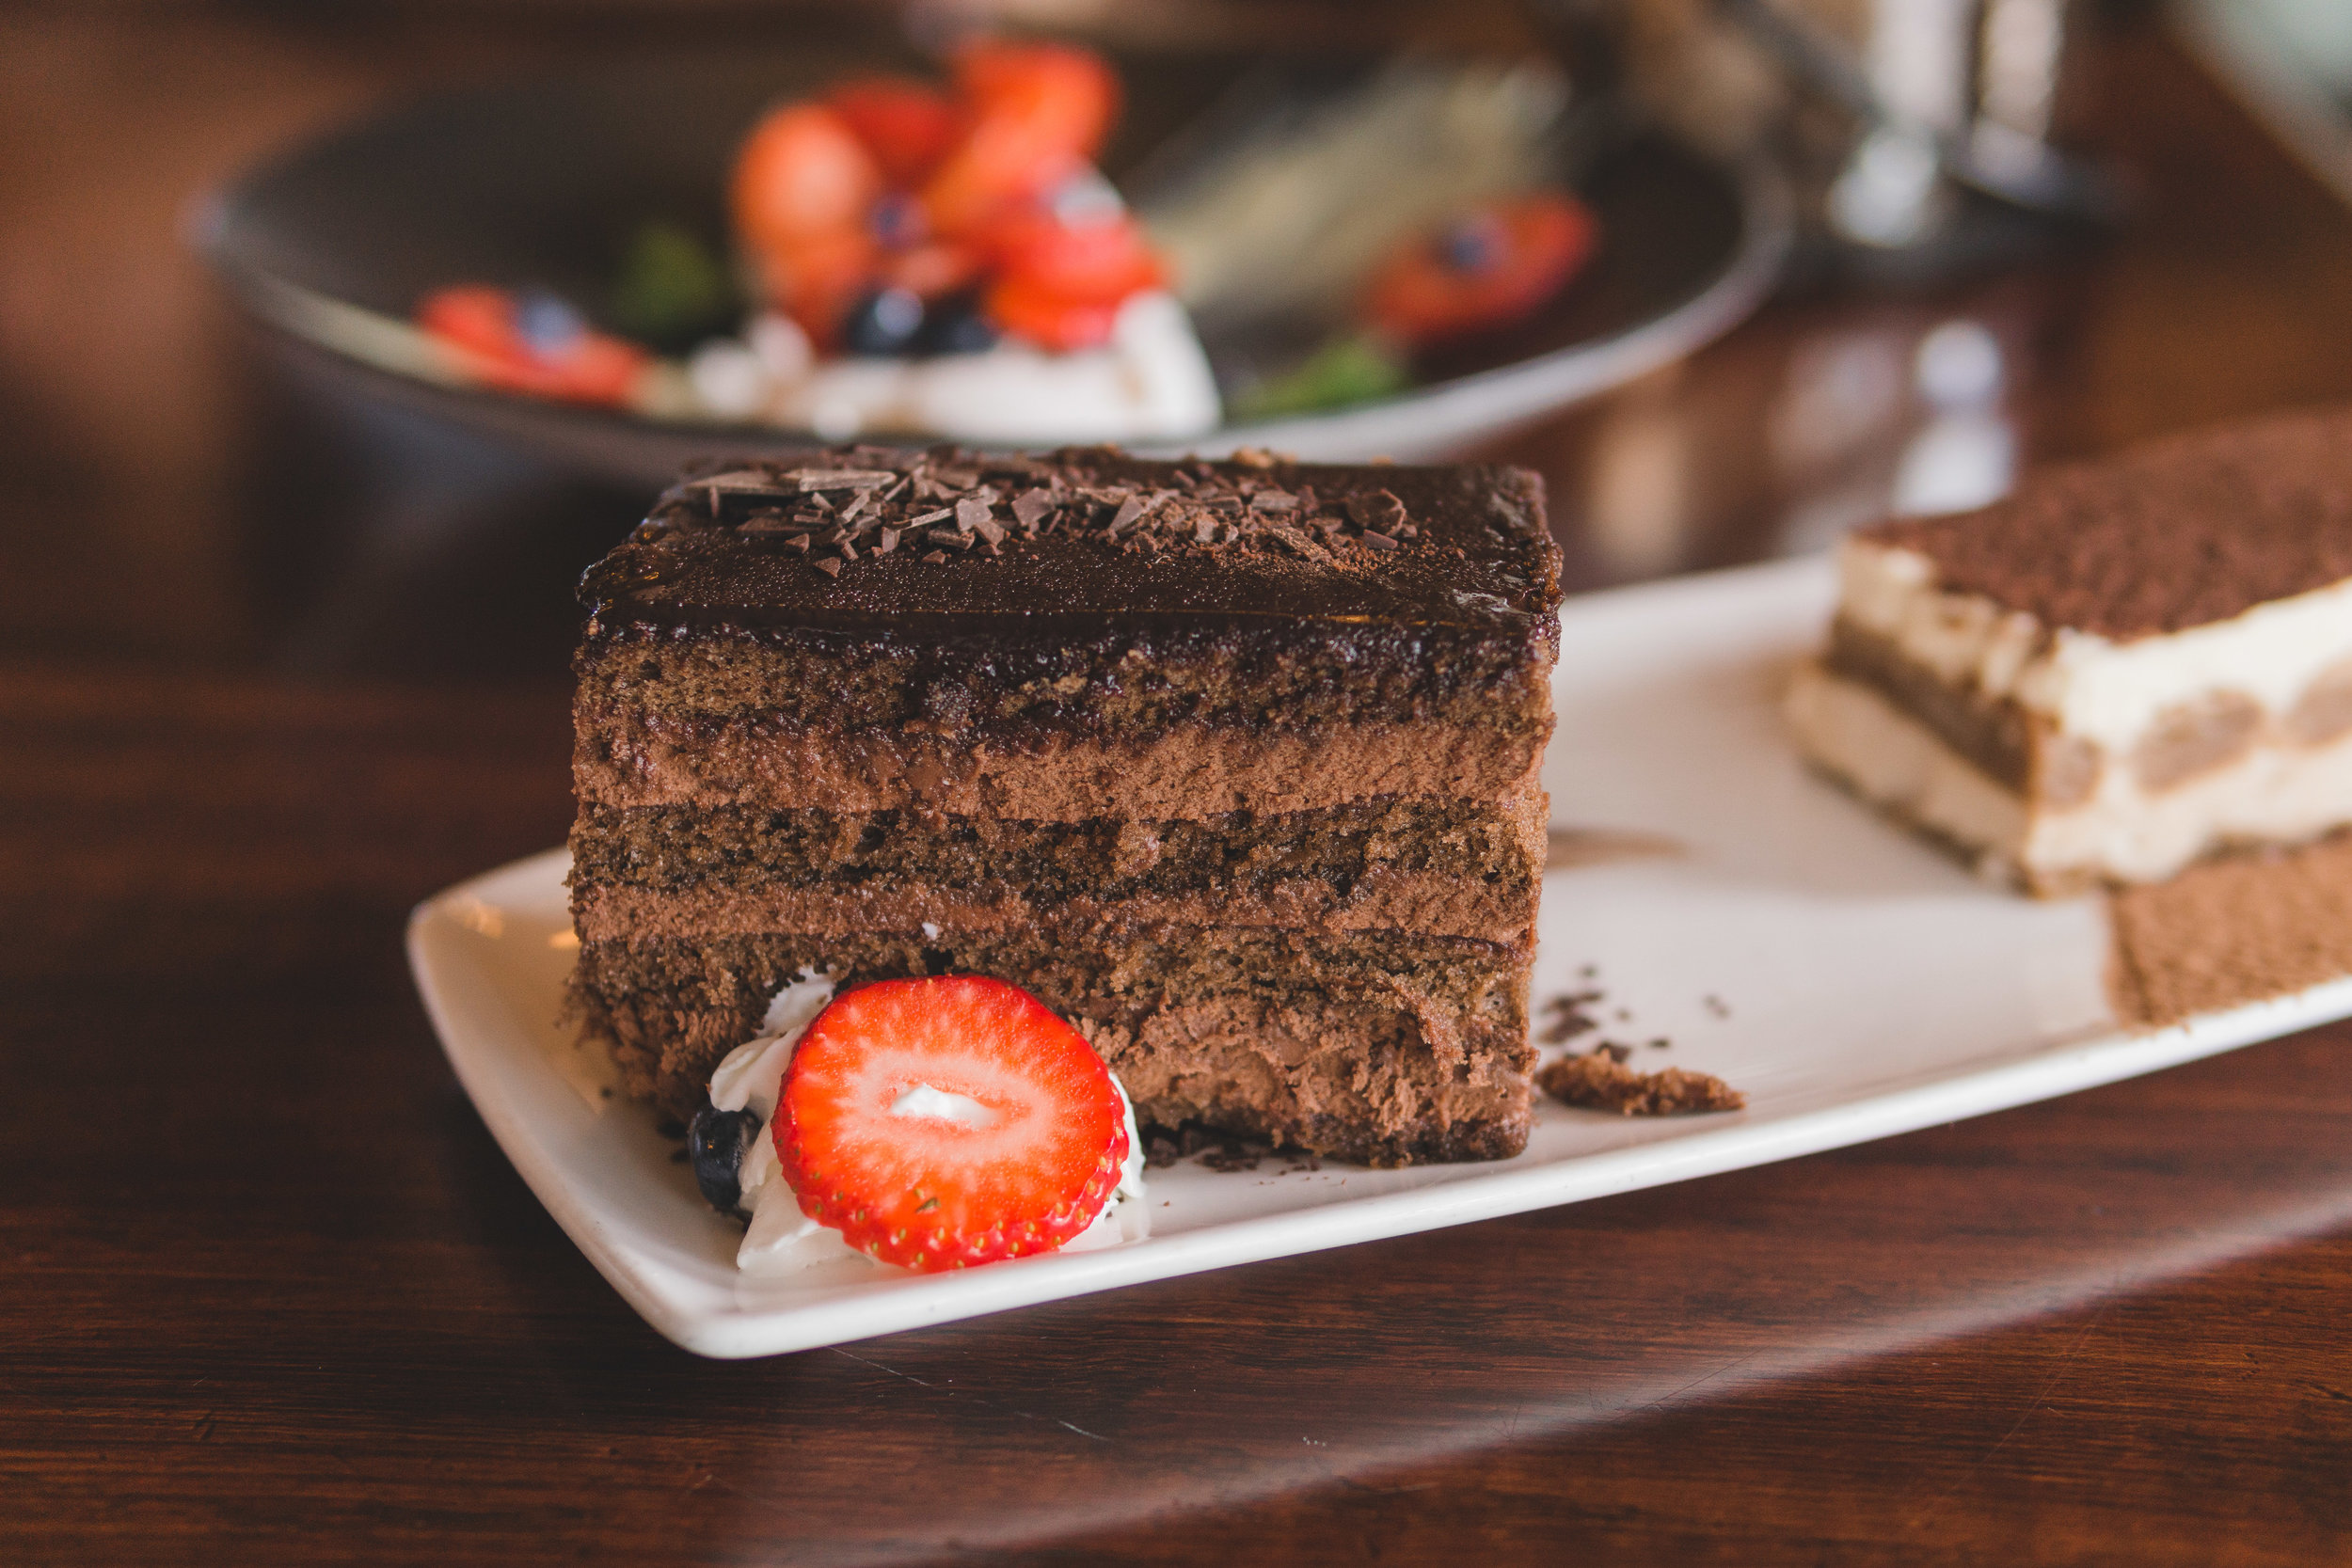 Triple Chocolate Cake: Layer cake, chocolate ganache, whipped cream, strawberry